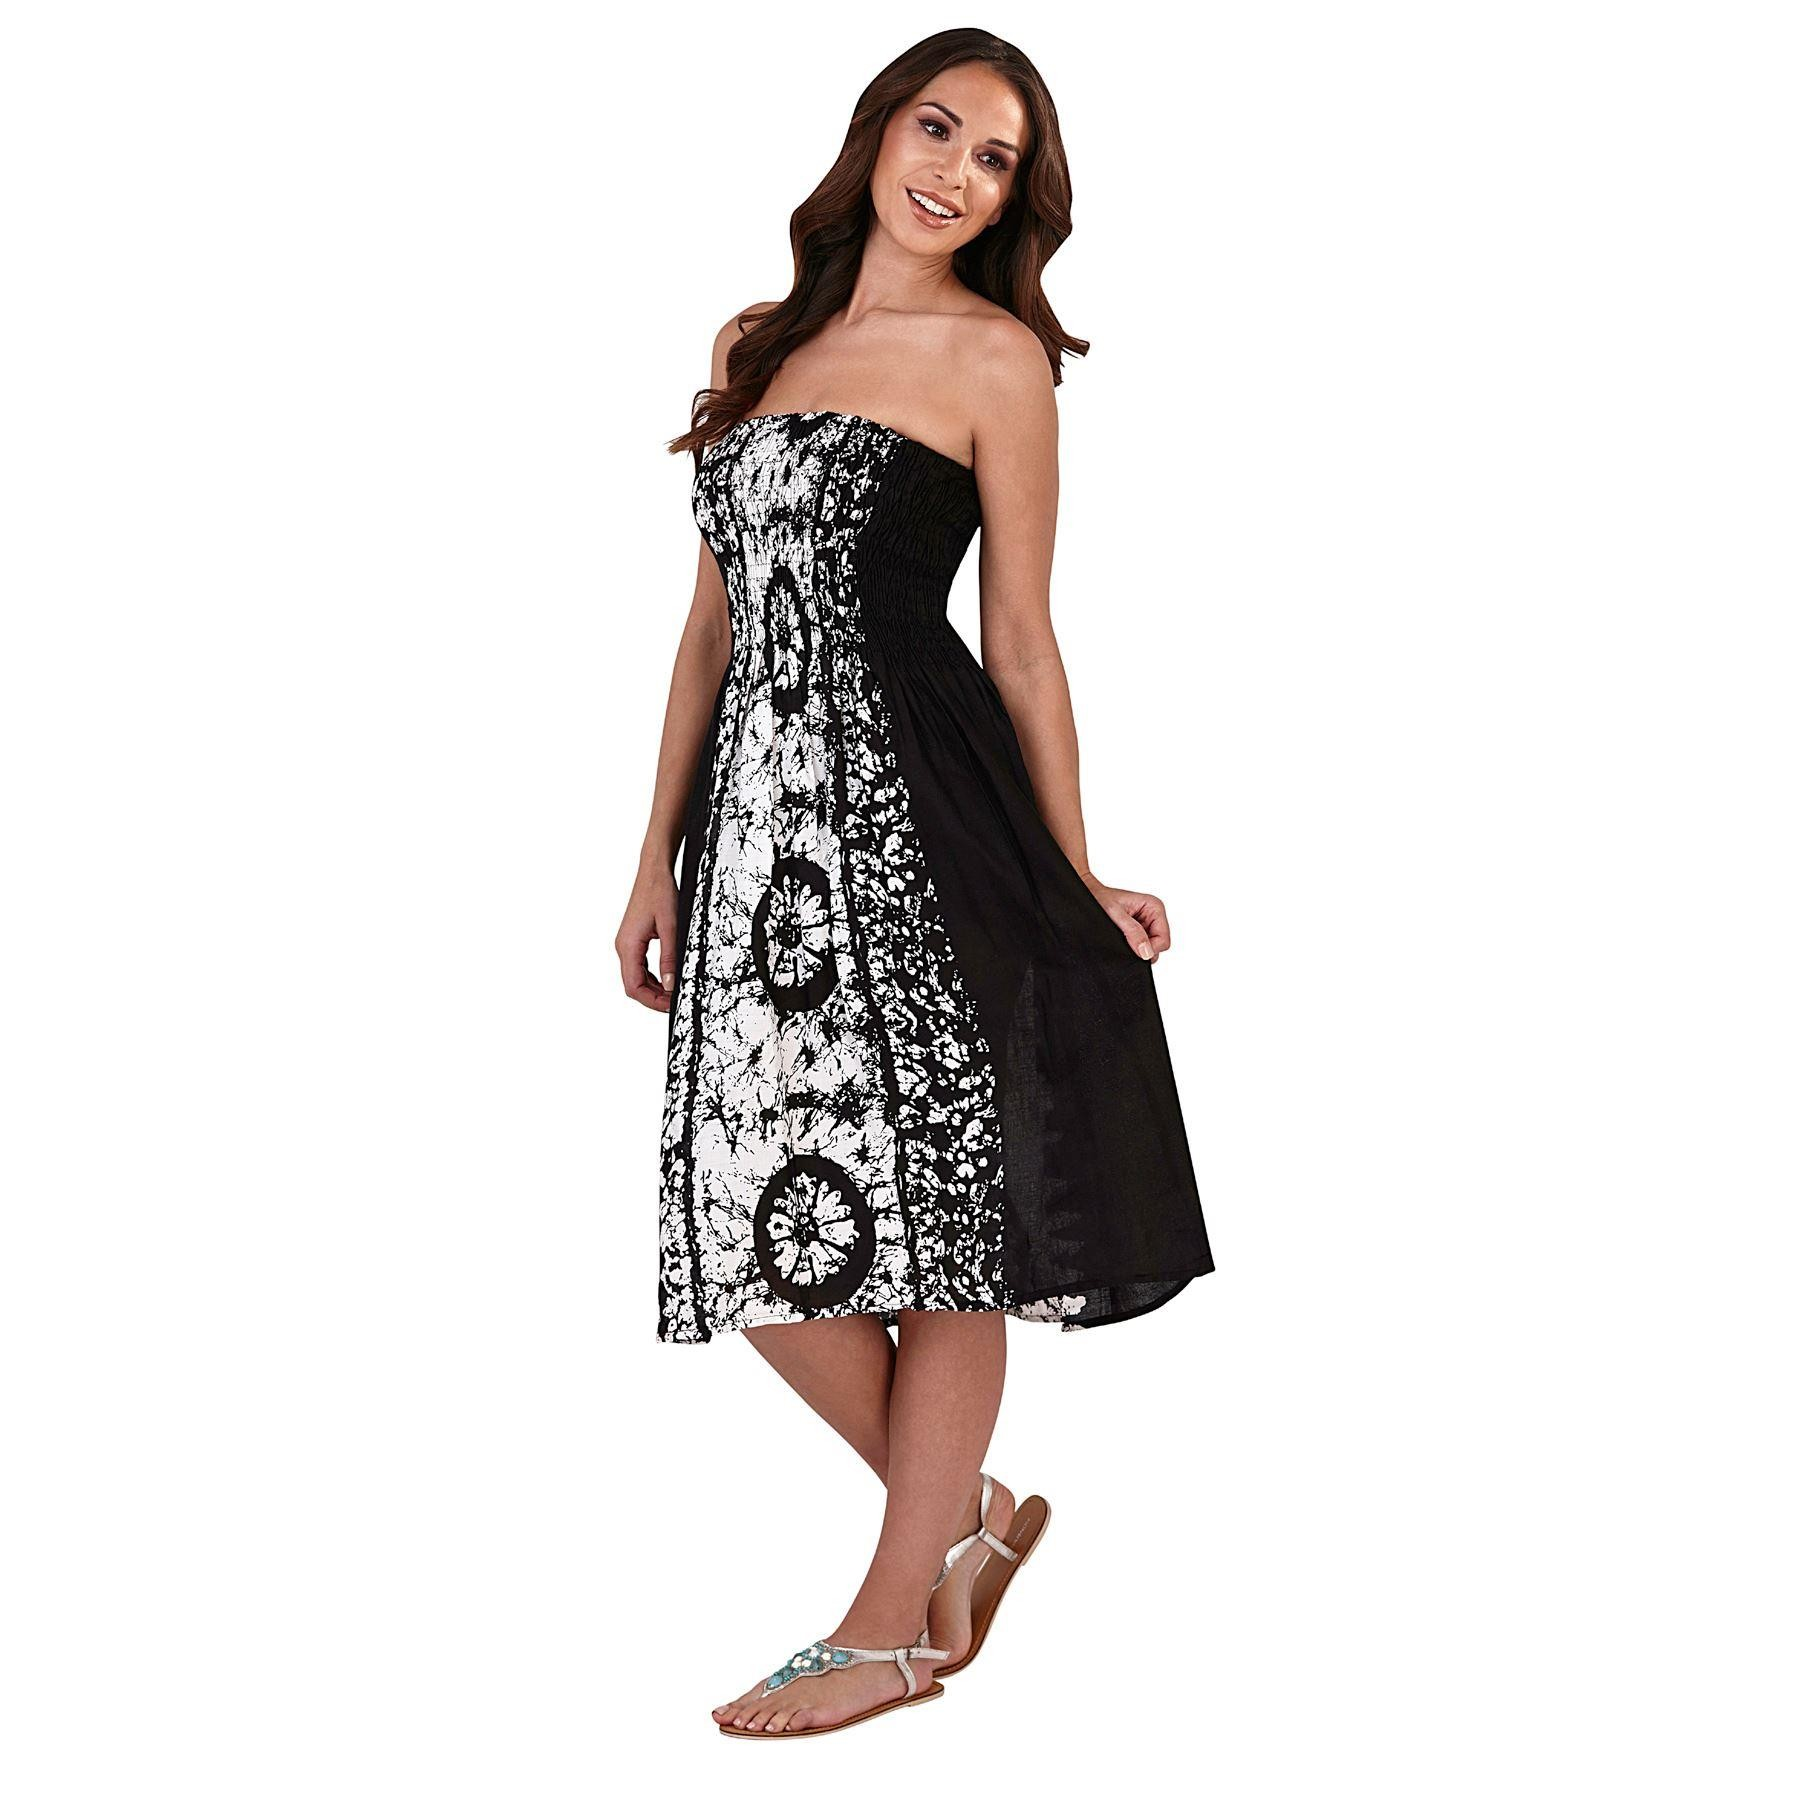 Pistachio Tie Dye 3 in 1 Dress/Skirt - Black